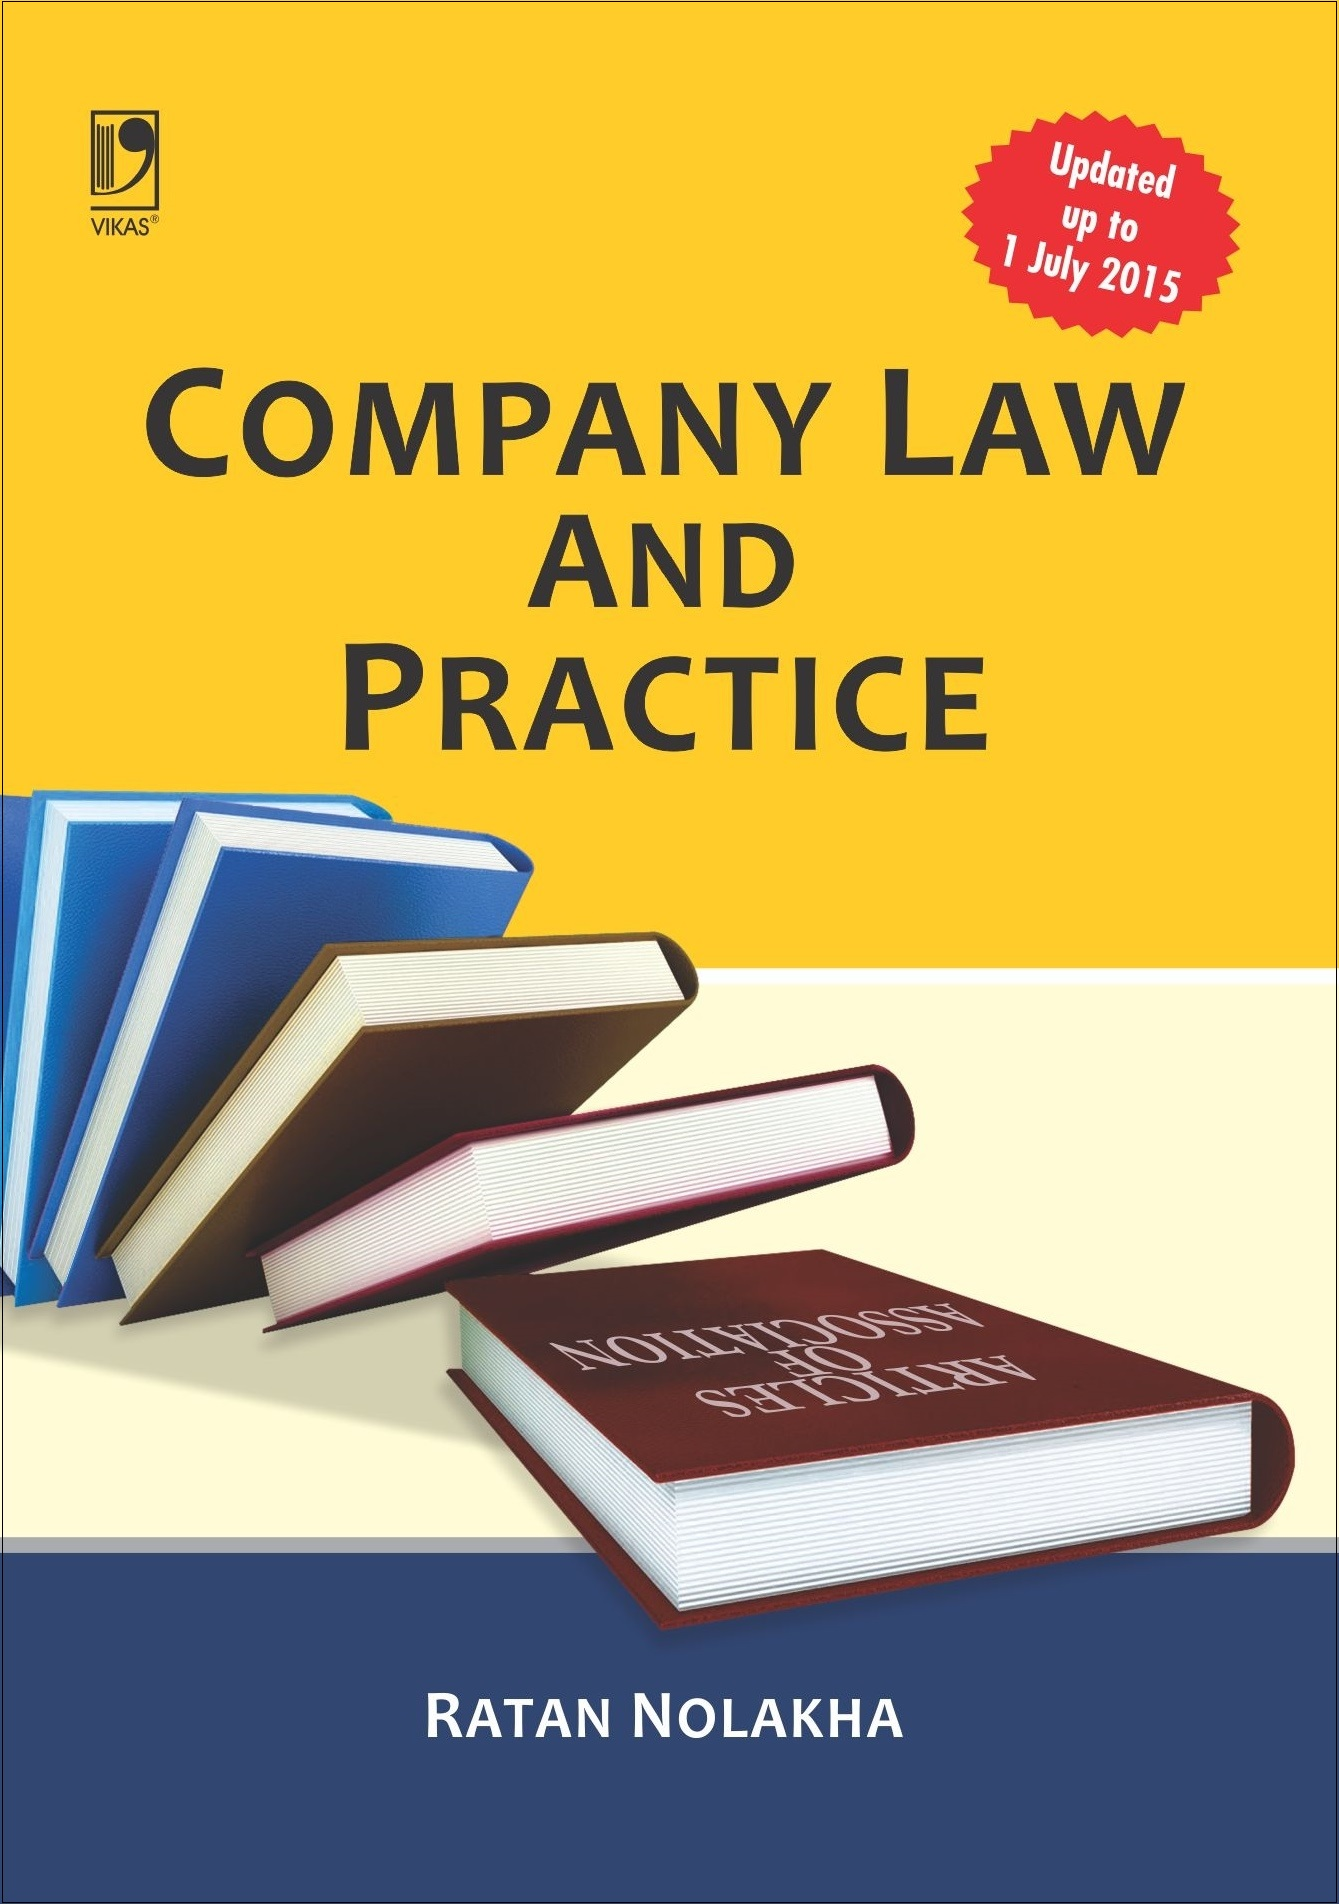 COMPANY LAW AND PRACTICE by  RATAN NOLAKHA